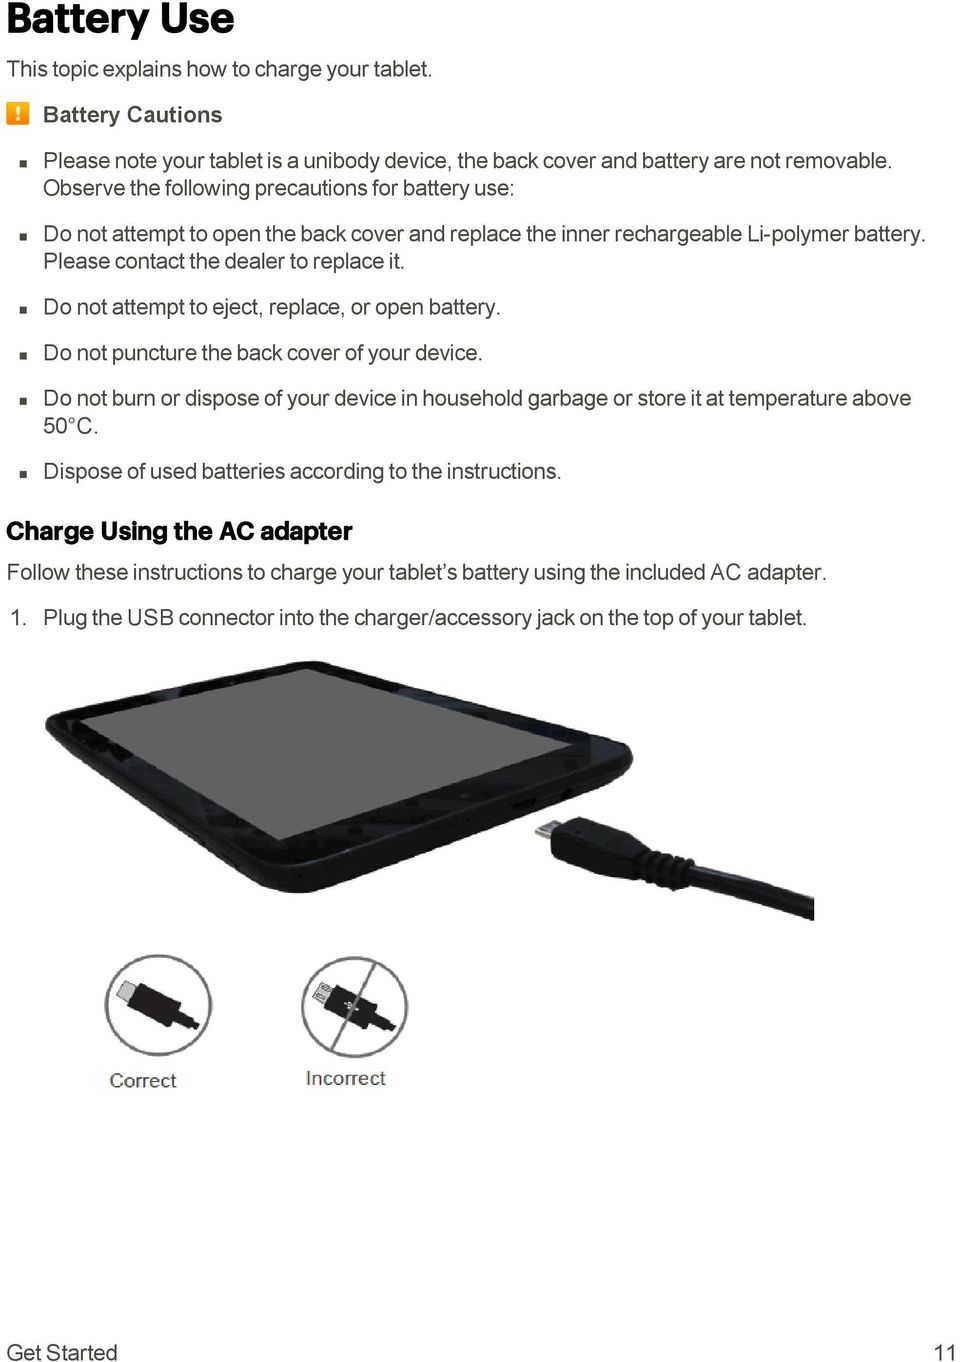 Do not attempt to eject, replace, or open battery. Do not puncture the back cover of your device. Do not burn or dispose of your device in household garbage or store it at temperature above 50 C.